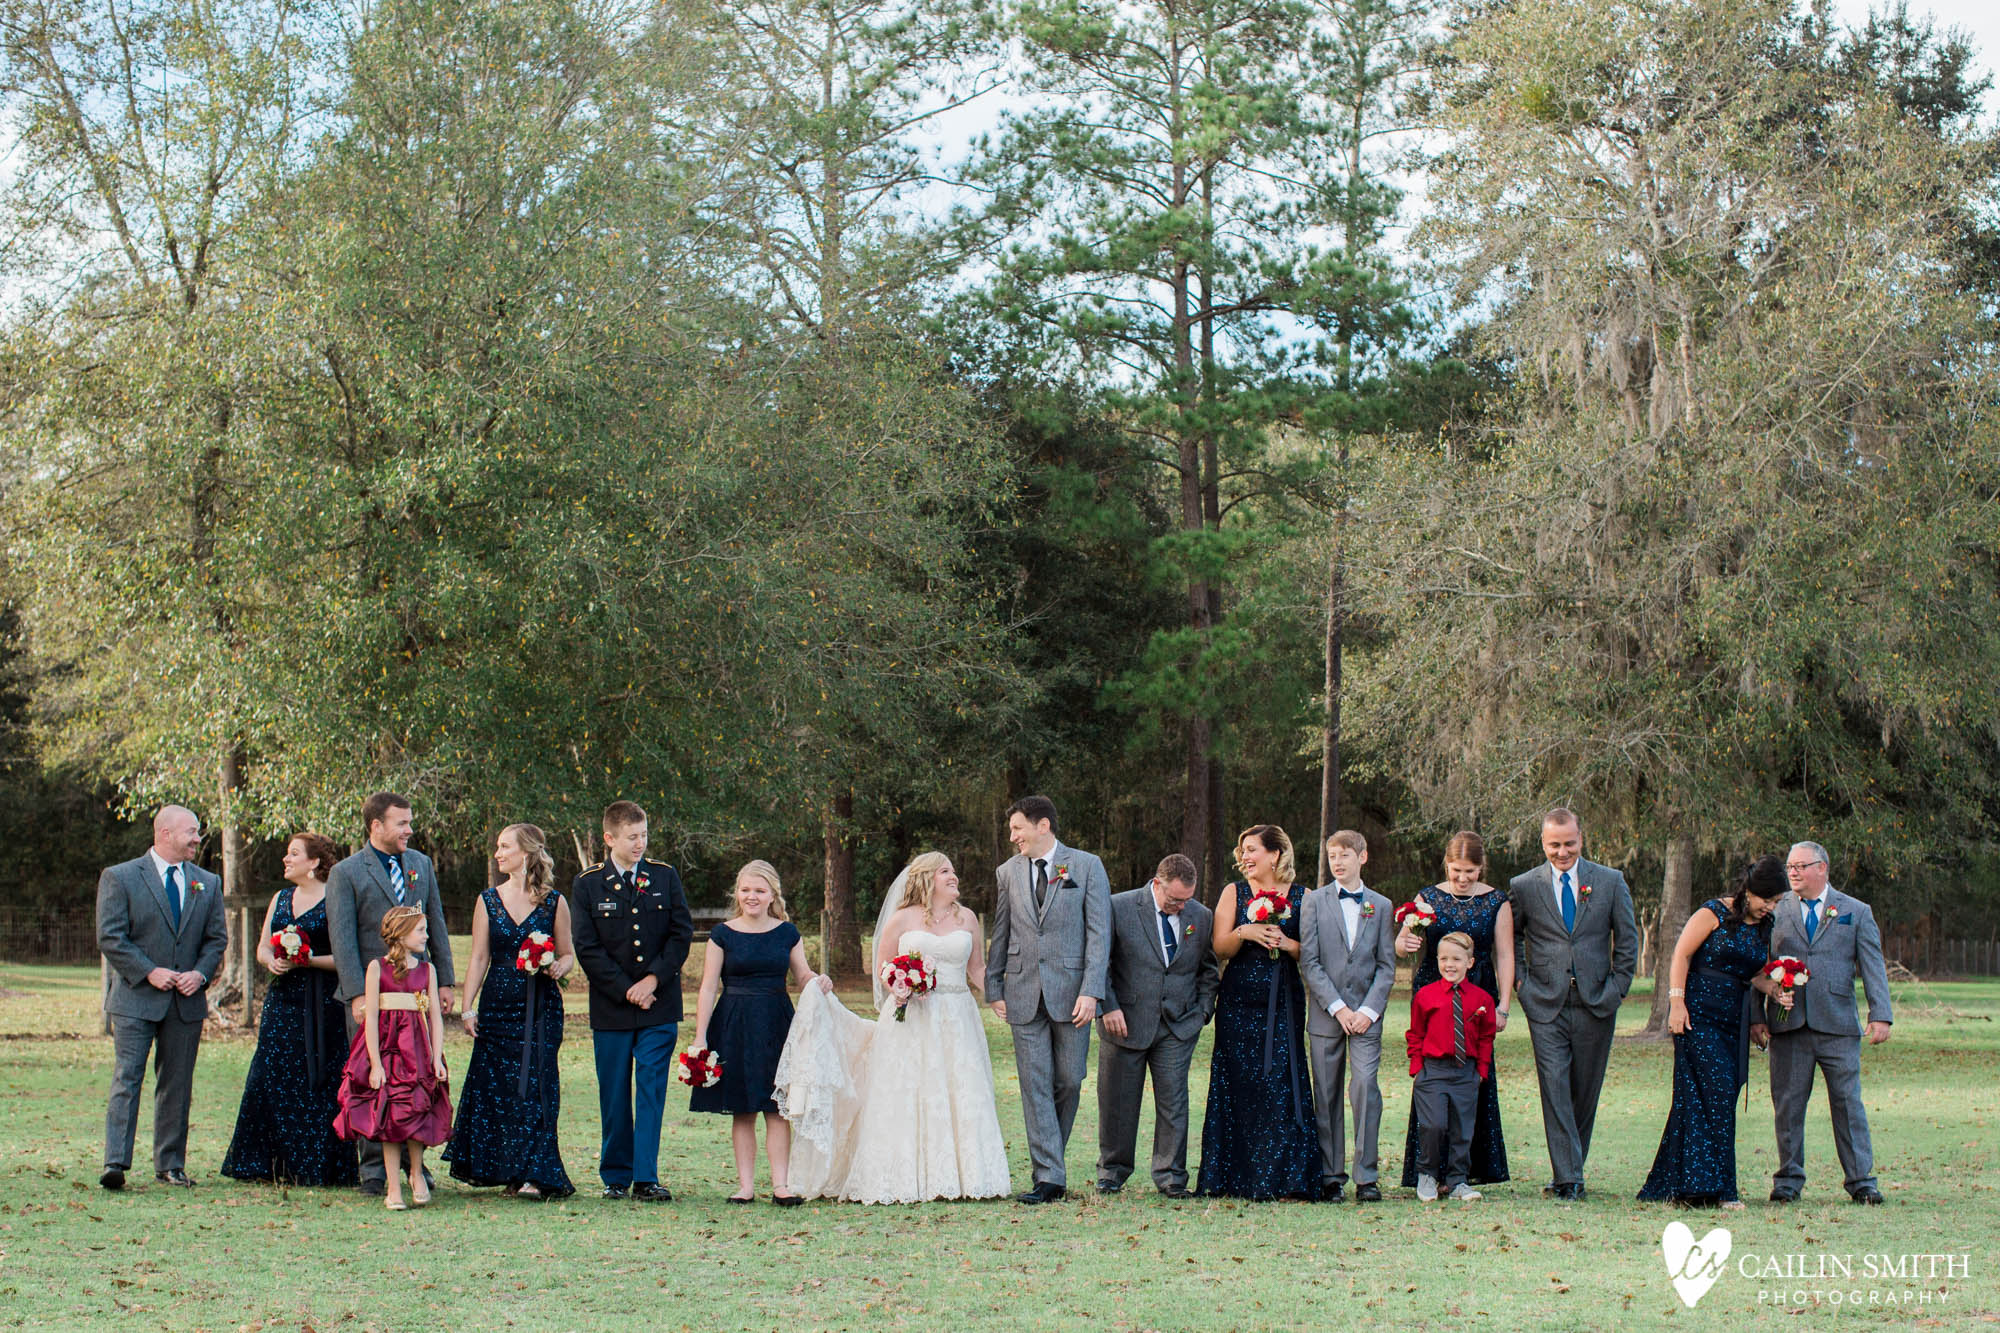 Christie_Nathan_Wedding_Photography_0042.jpg